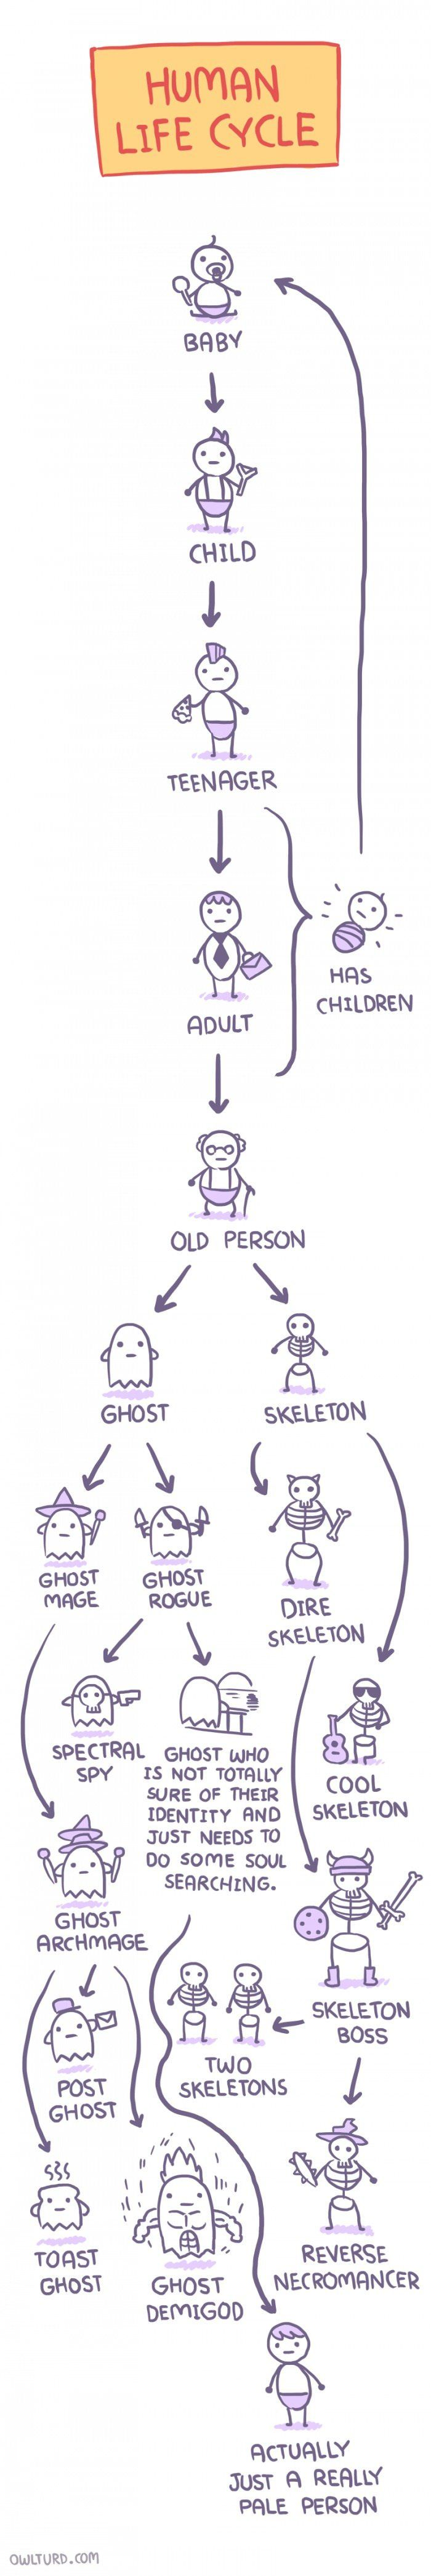 Human Life Cycle Comic http://geekxgirls.com/article.php?ID=9227